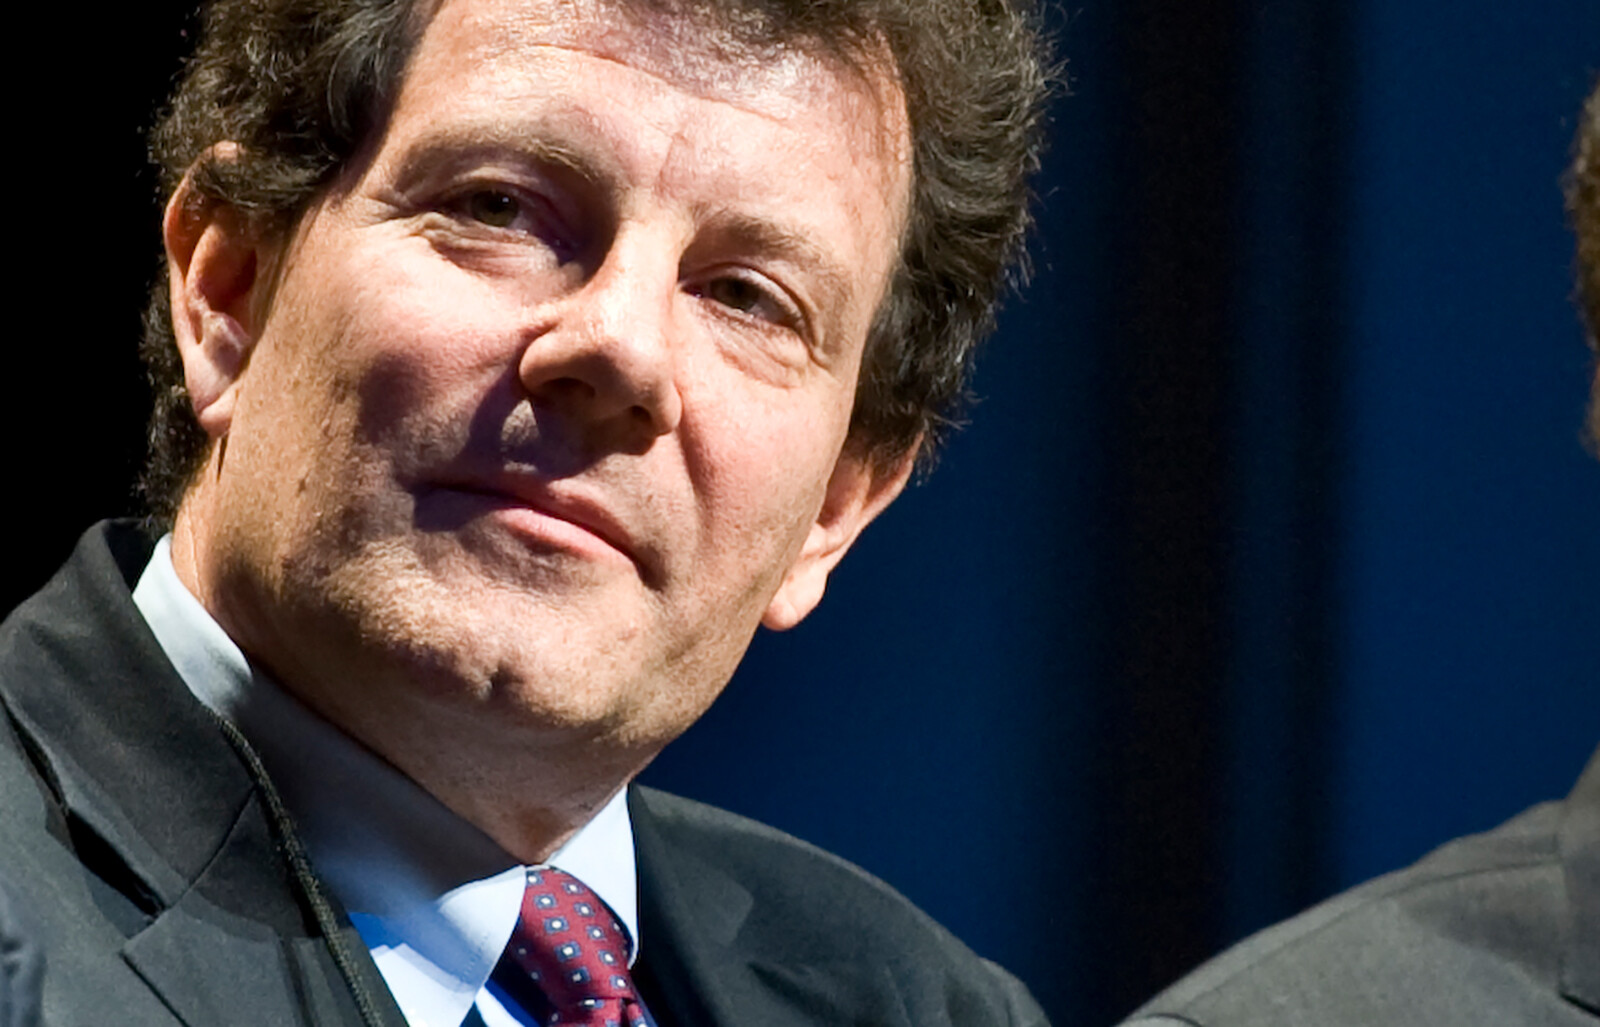 Nicholas Kristof leaves The New York Times as he explores run for governor of Oregon